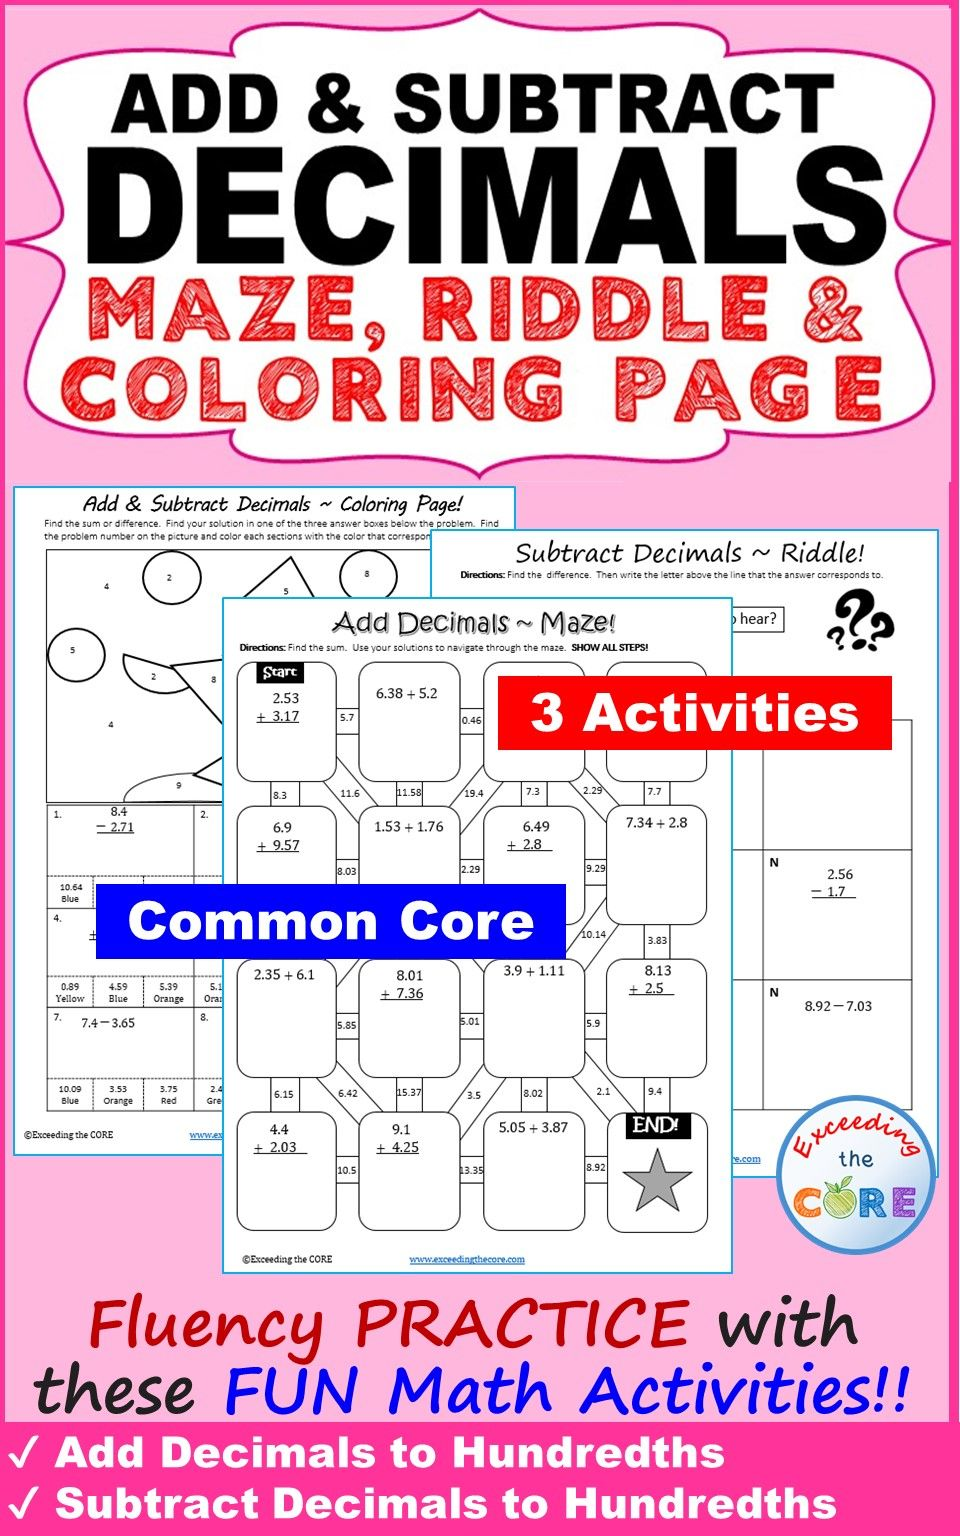 ADD AND SUBTRACT DECIMALS Maze, Riddle, Color by Number